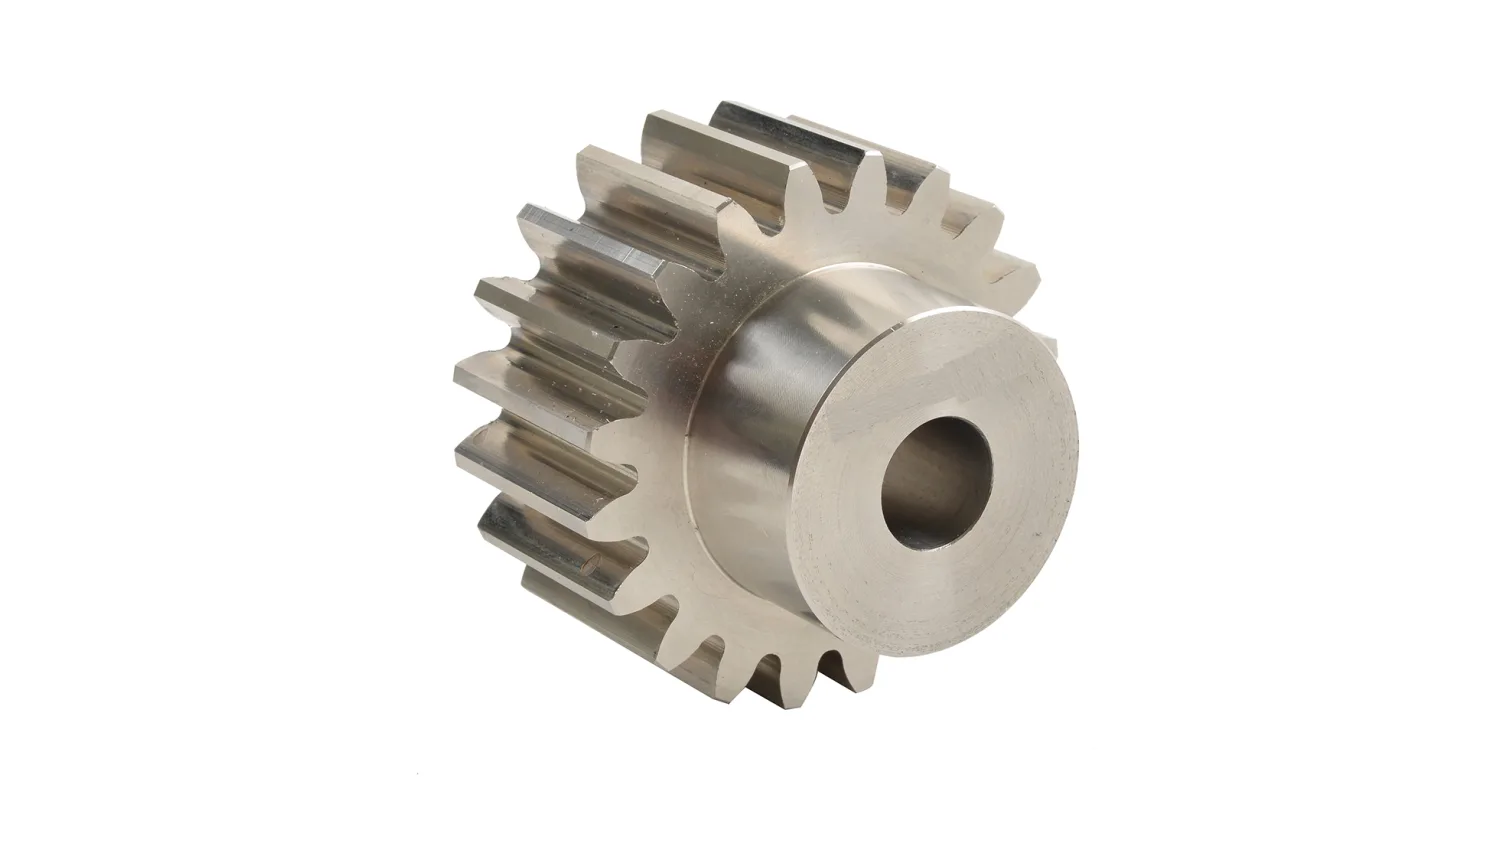 1-Mod-x-49-Tooth-Metric-Spur-Gear-in-Steel